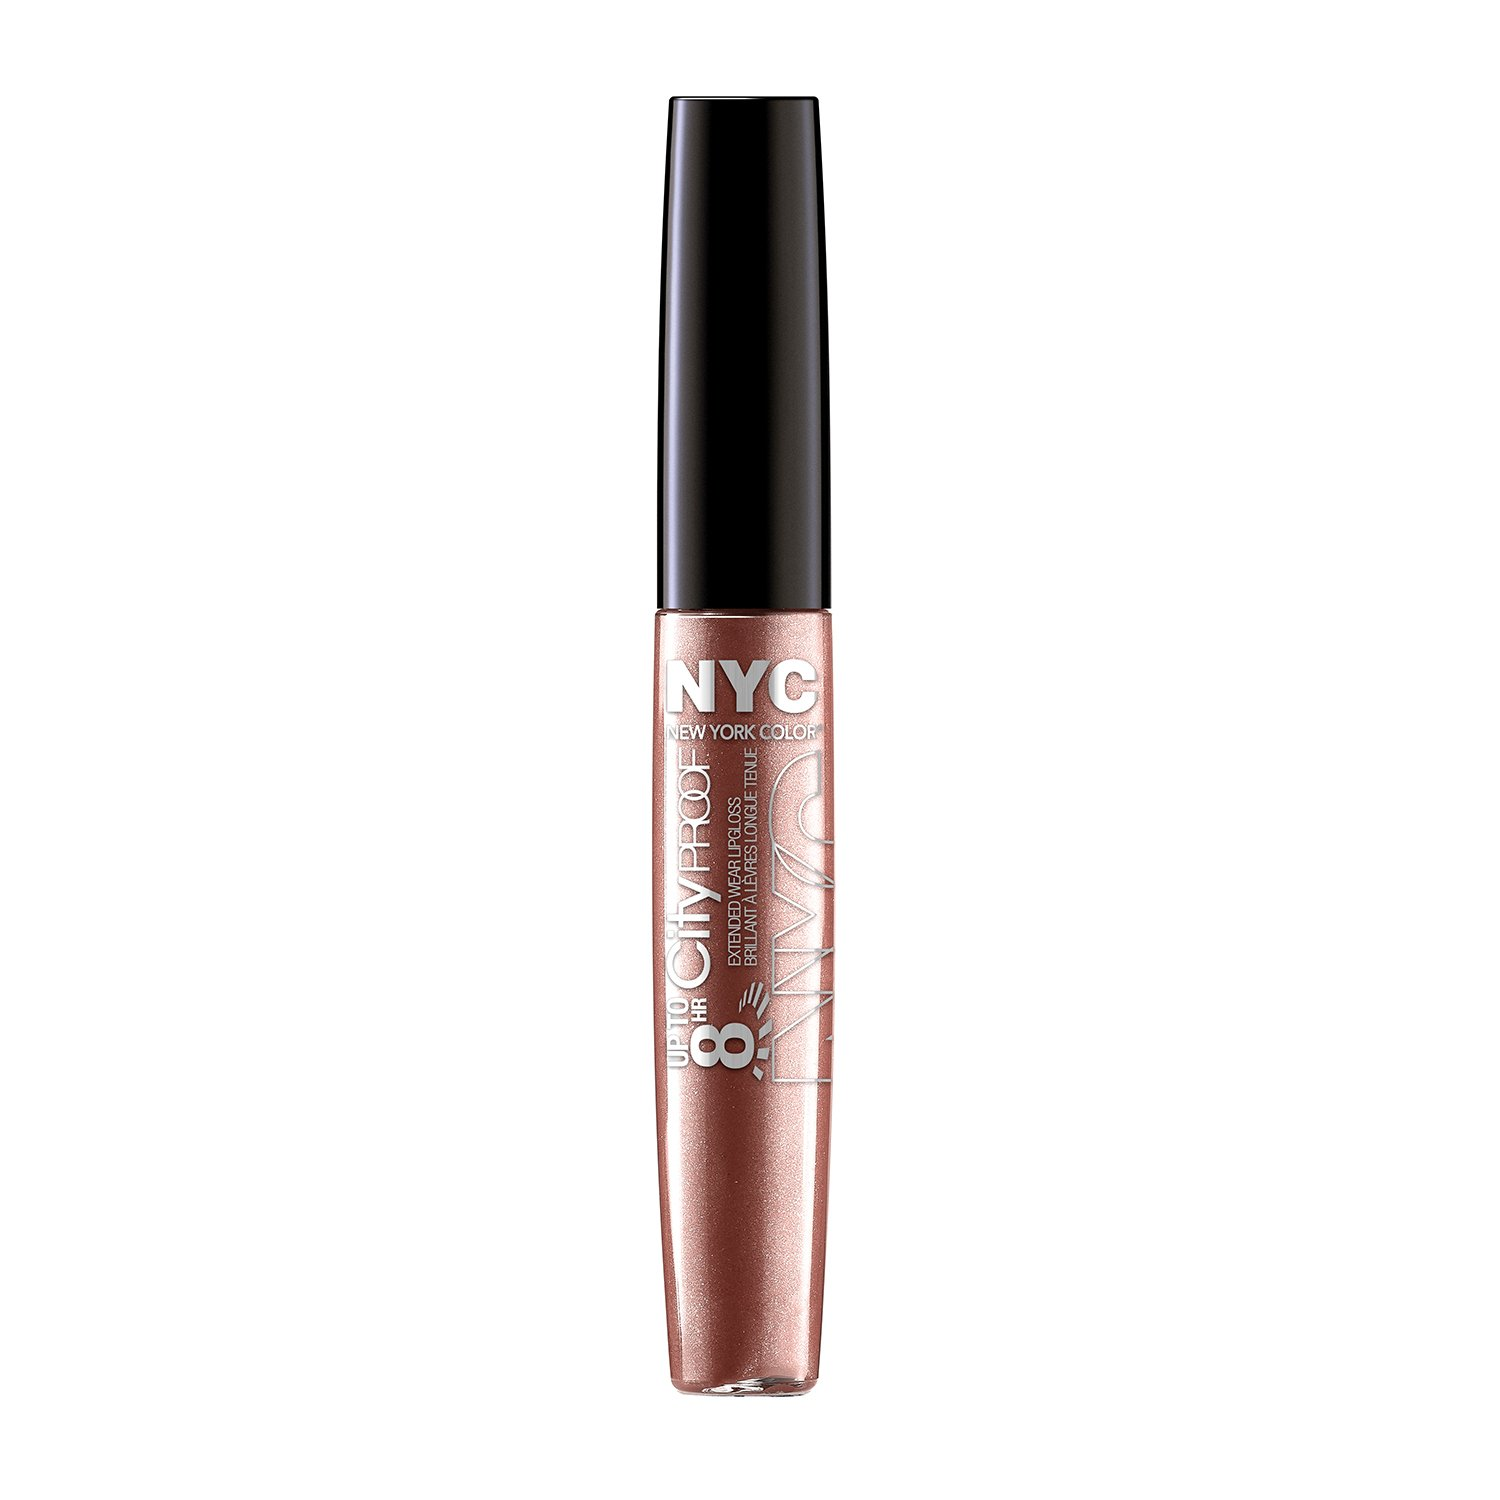 NYC Up To 8HR City Proof Gloss - Gold With Me